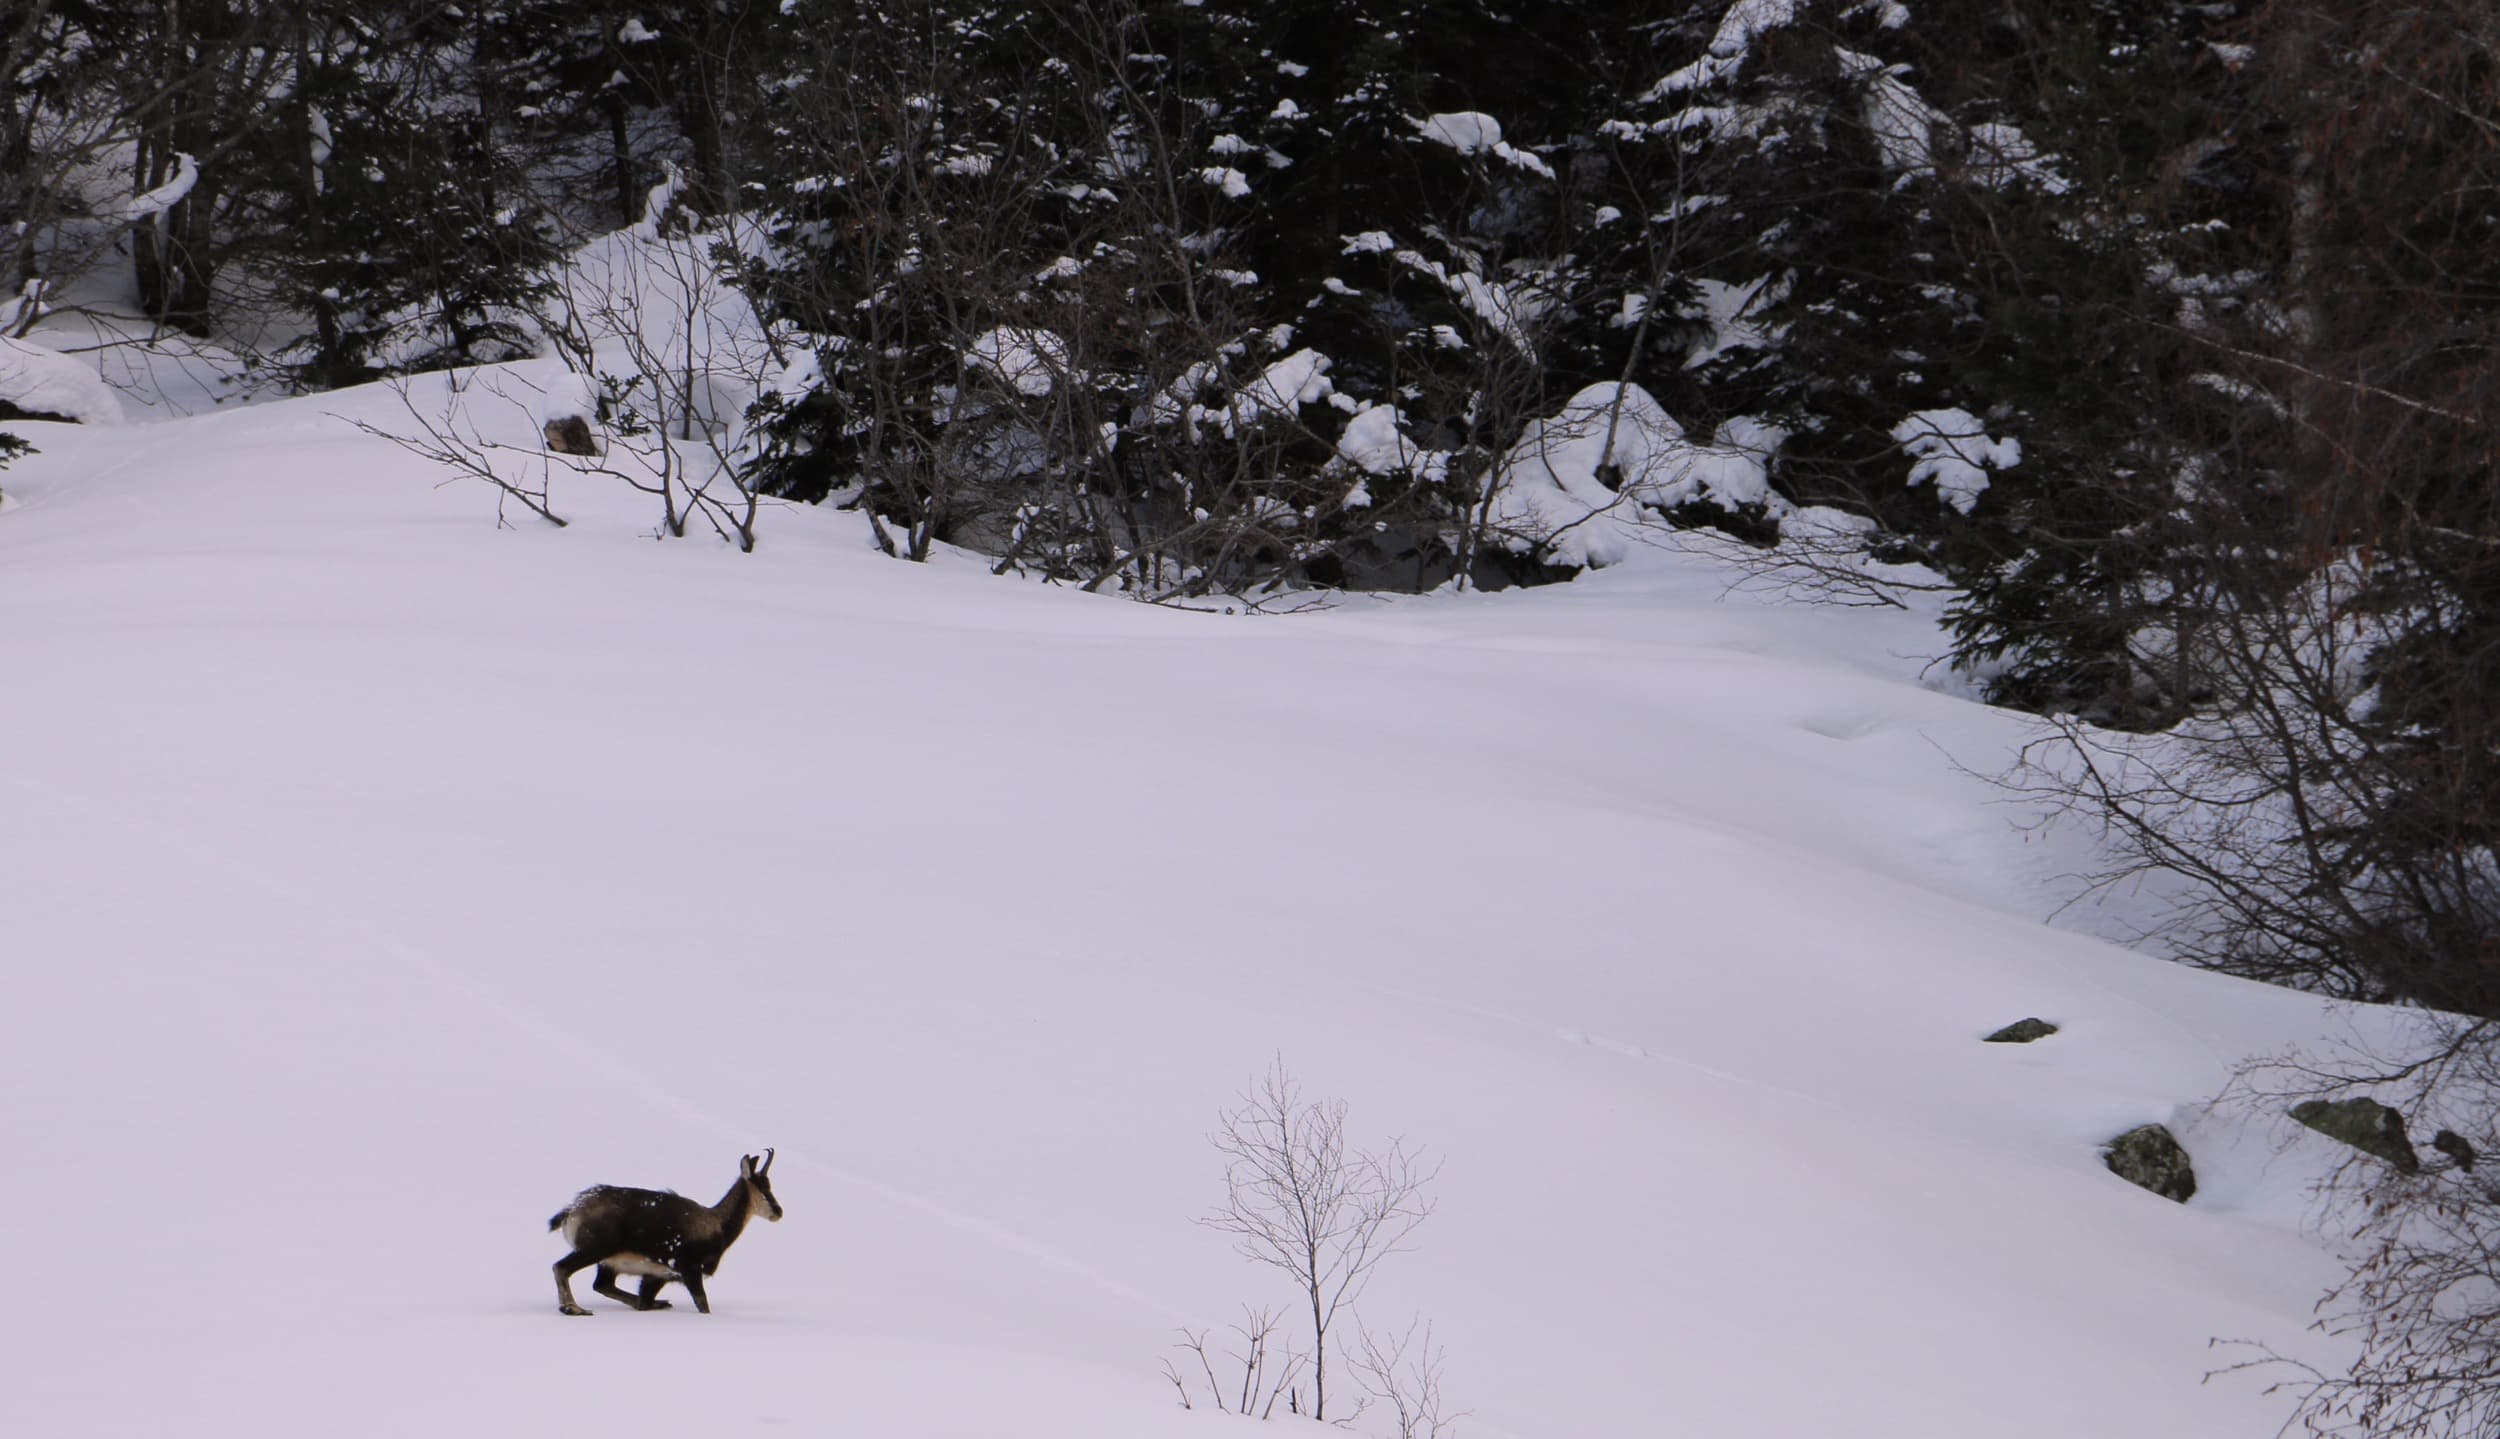 The chamois are adapted to walk in these conditions.